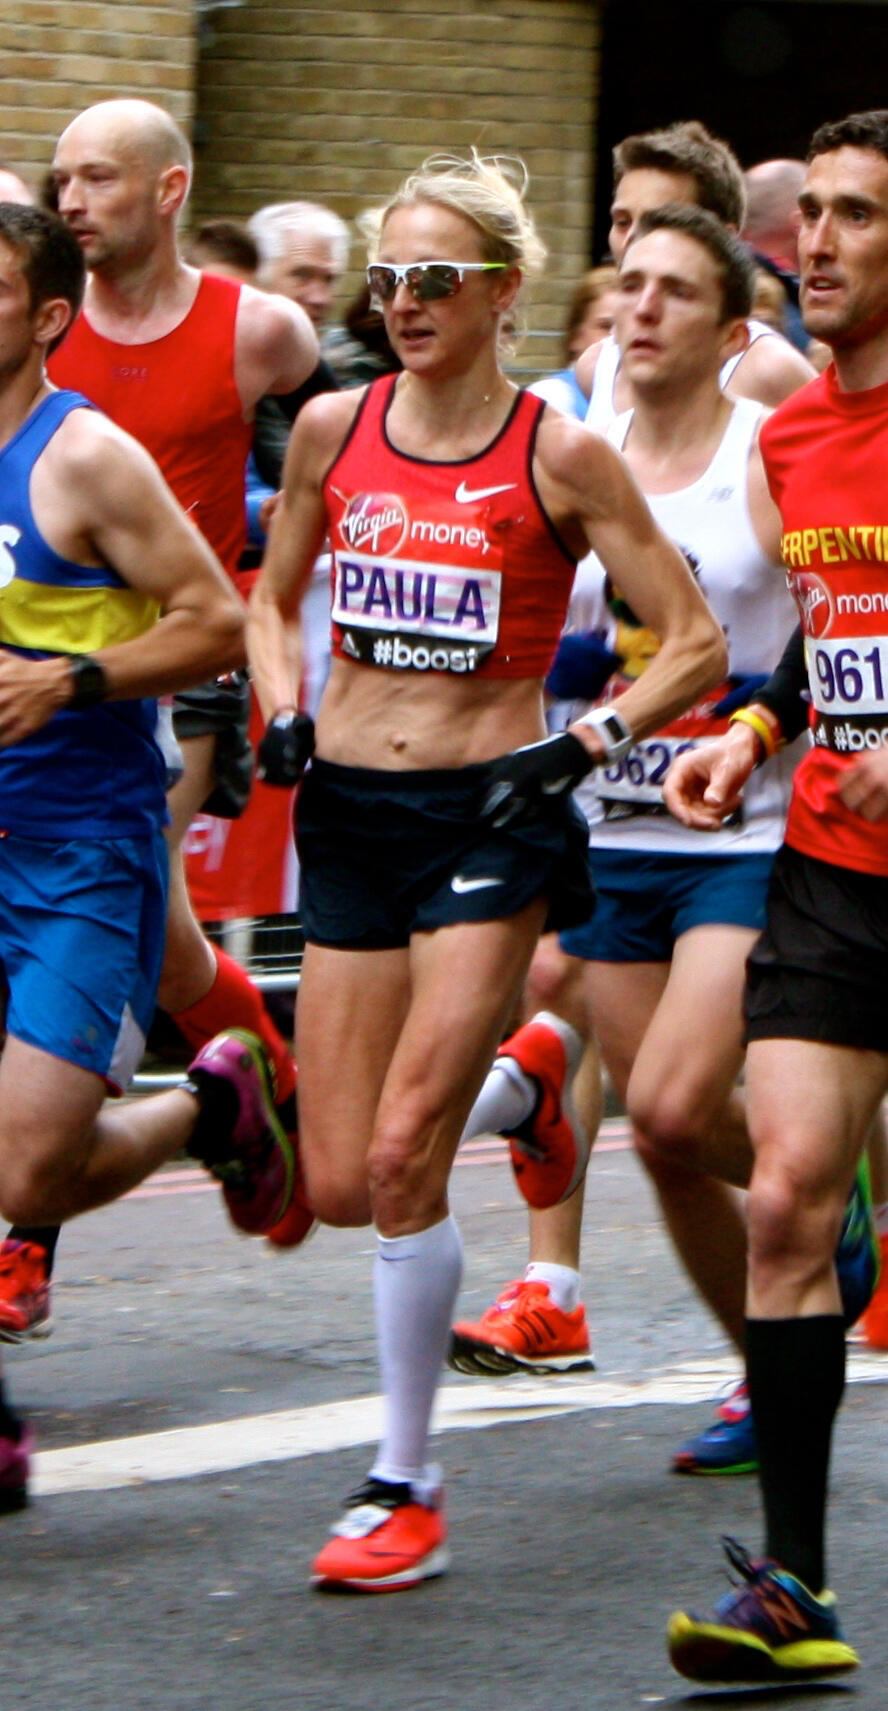 Paula Radcliffe competing in the 2015 London Marathon, which would be the final race of her career